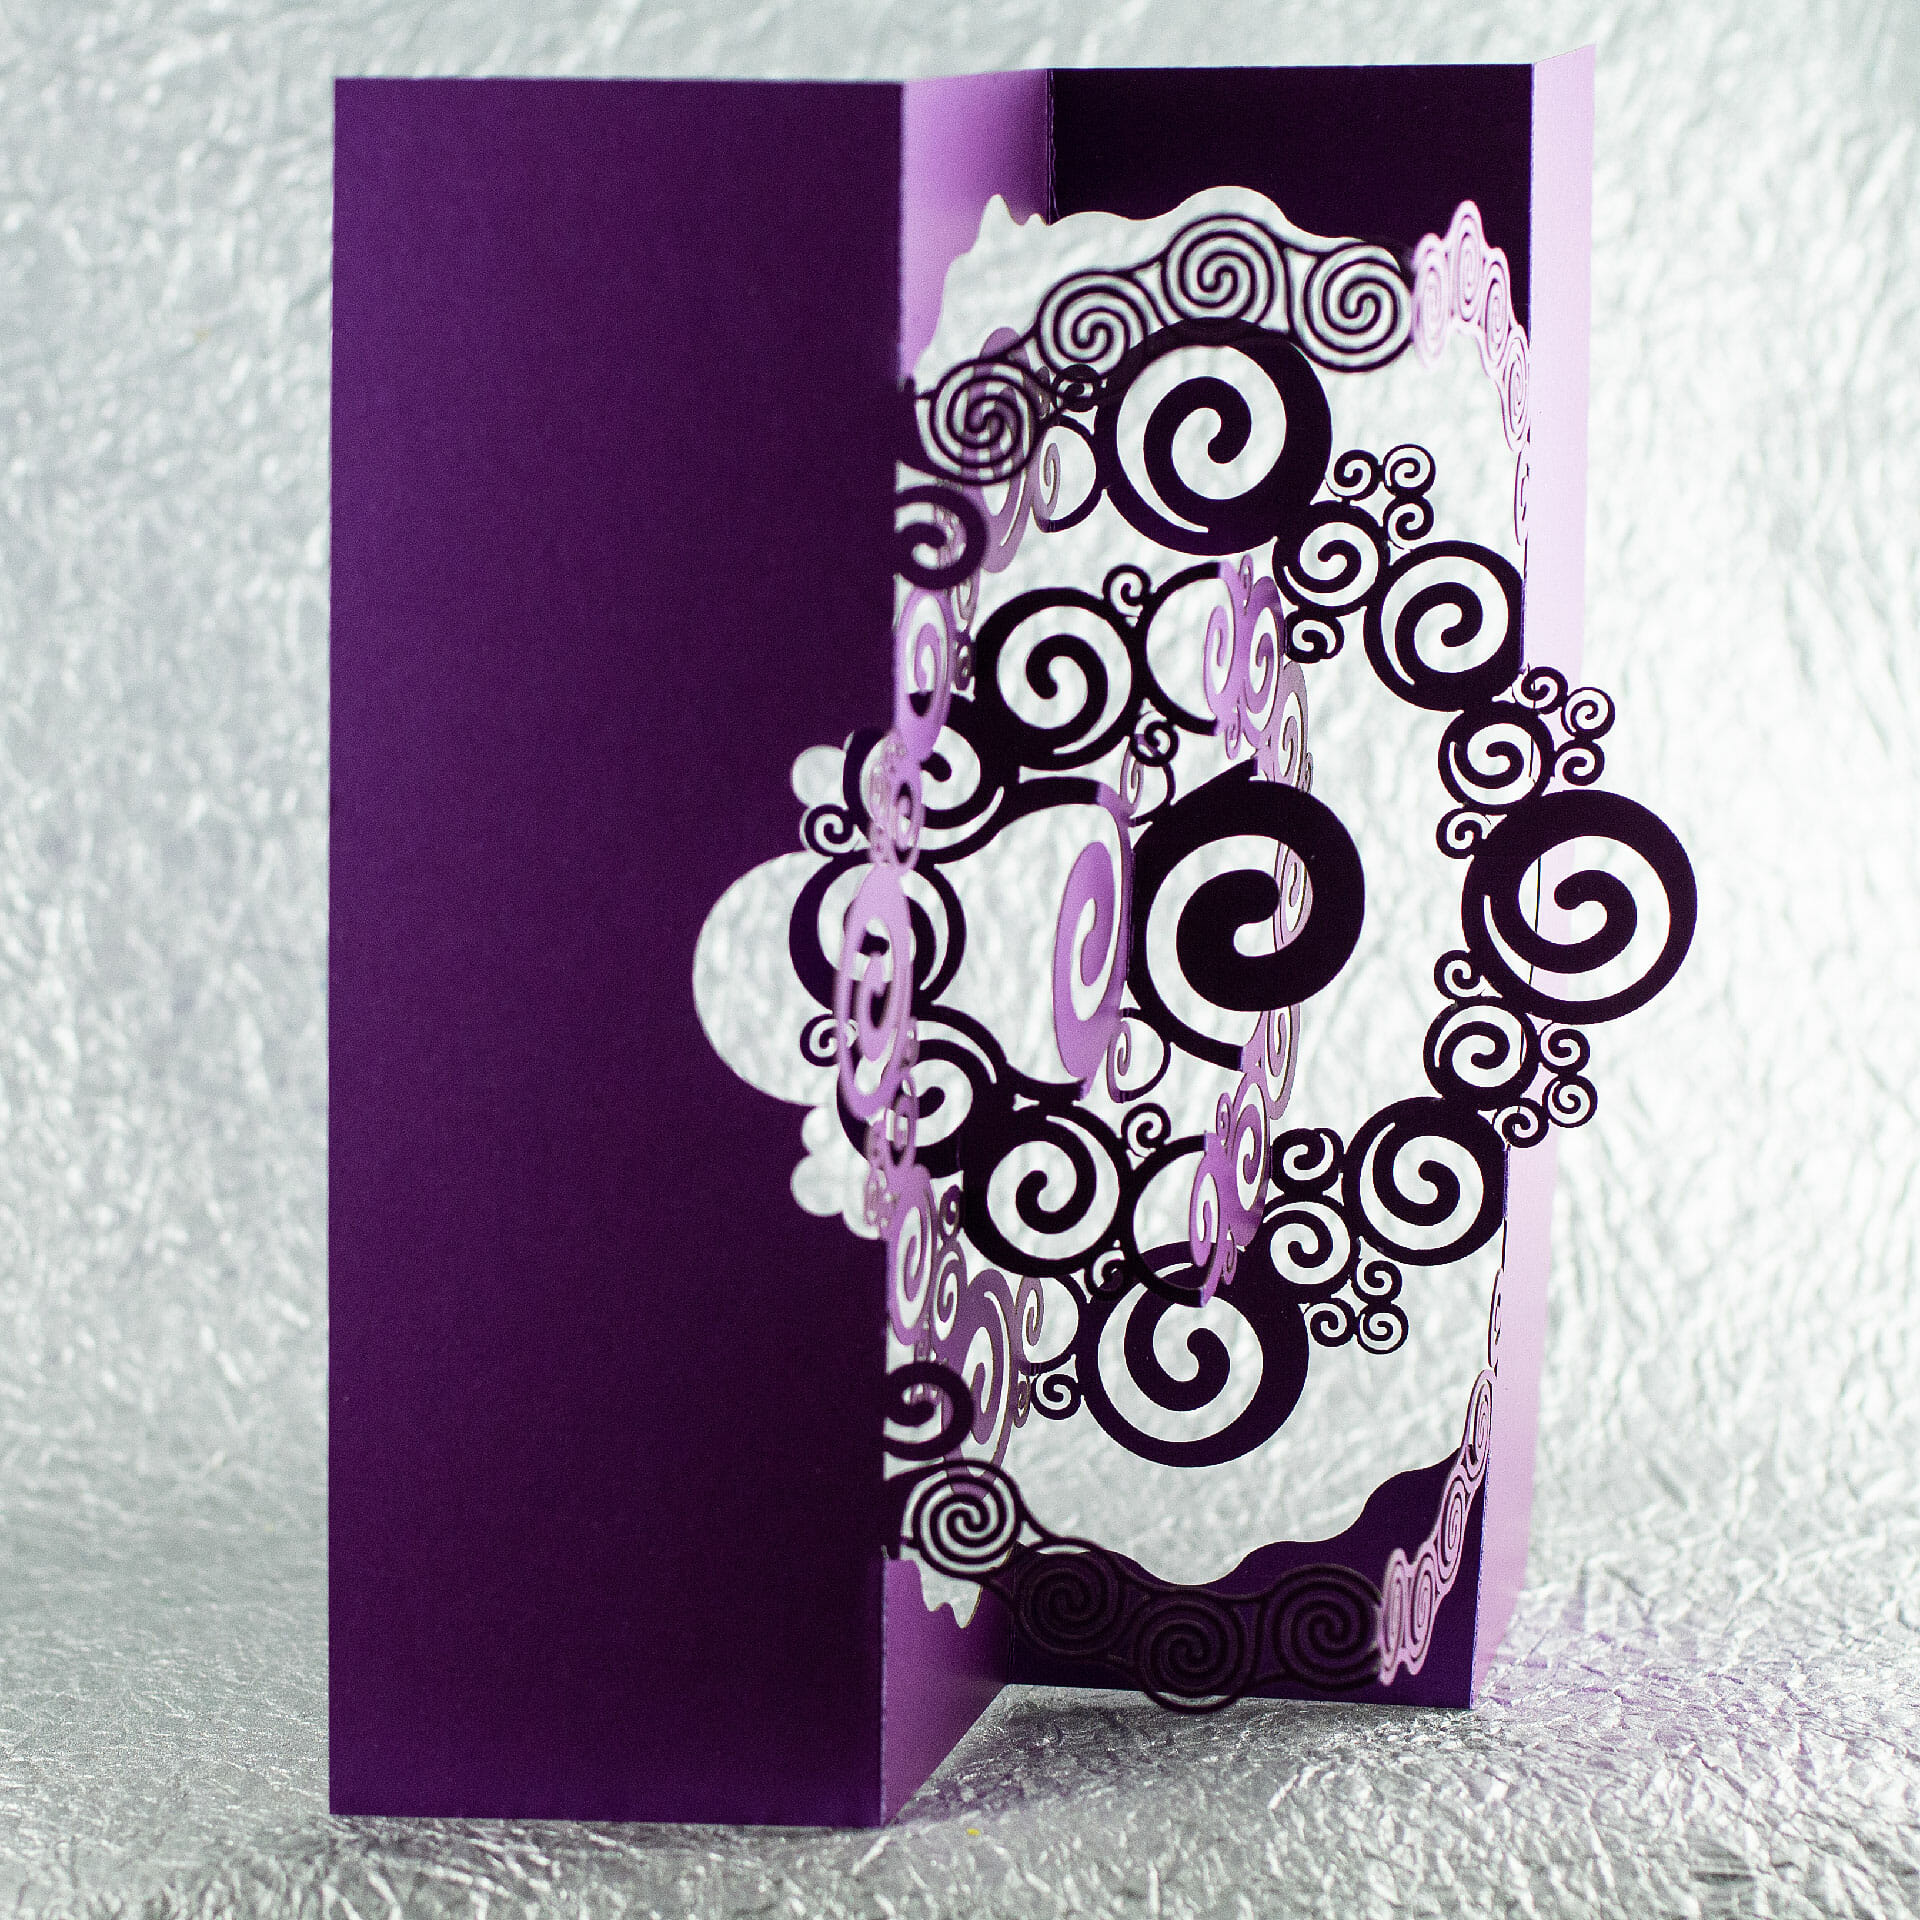 Spiraling (2018 Holiday OA/Kirigami Pop Up Card)